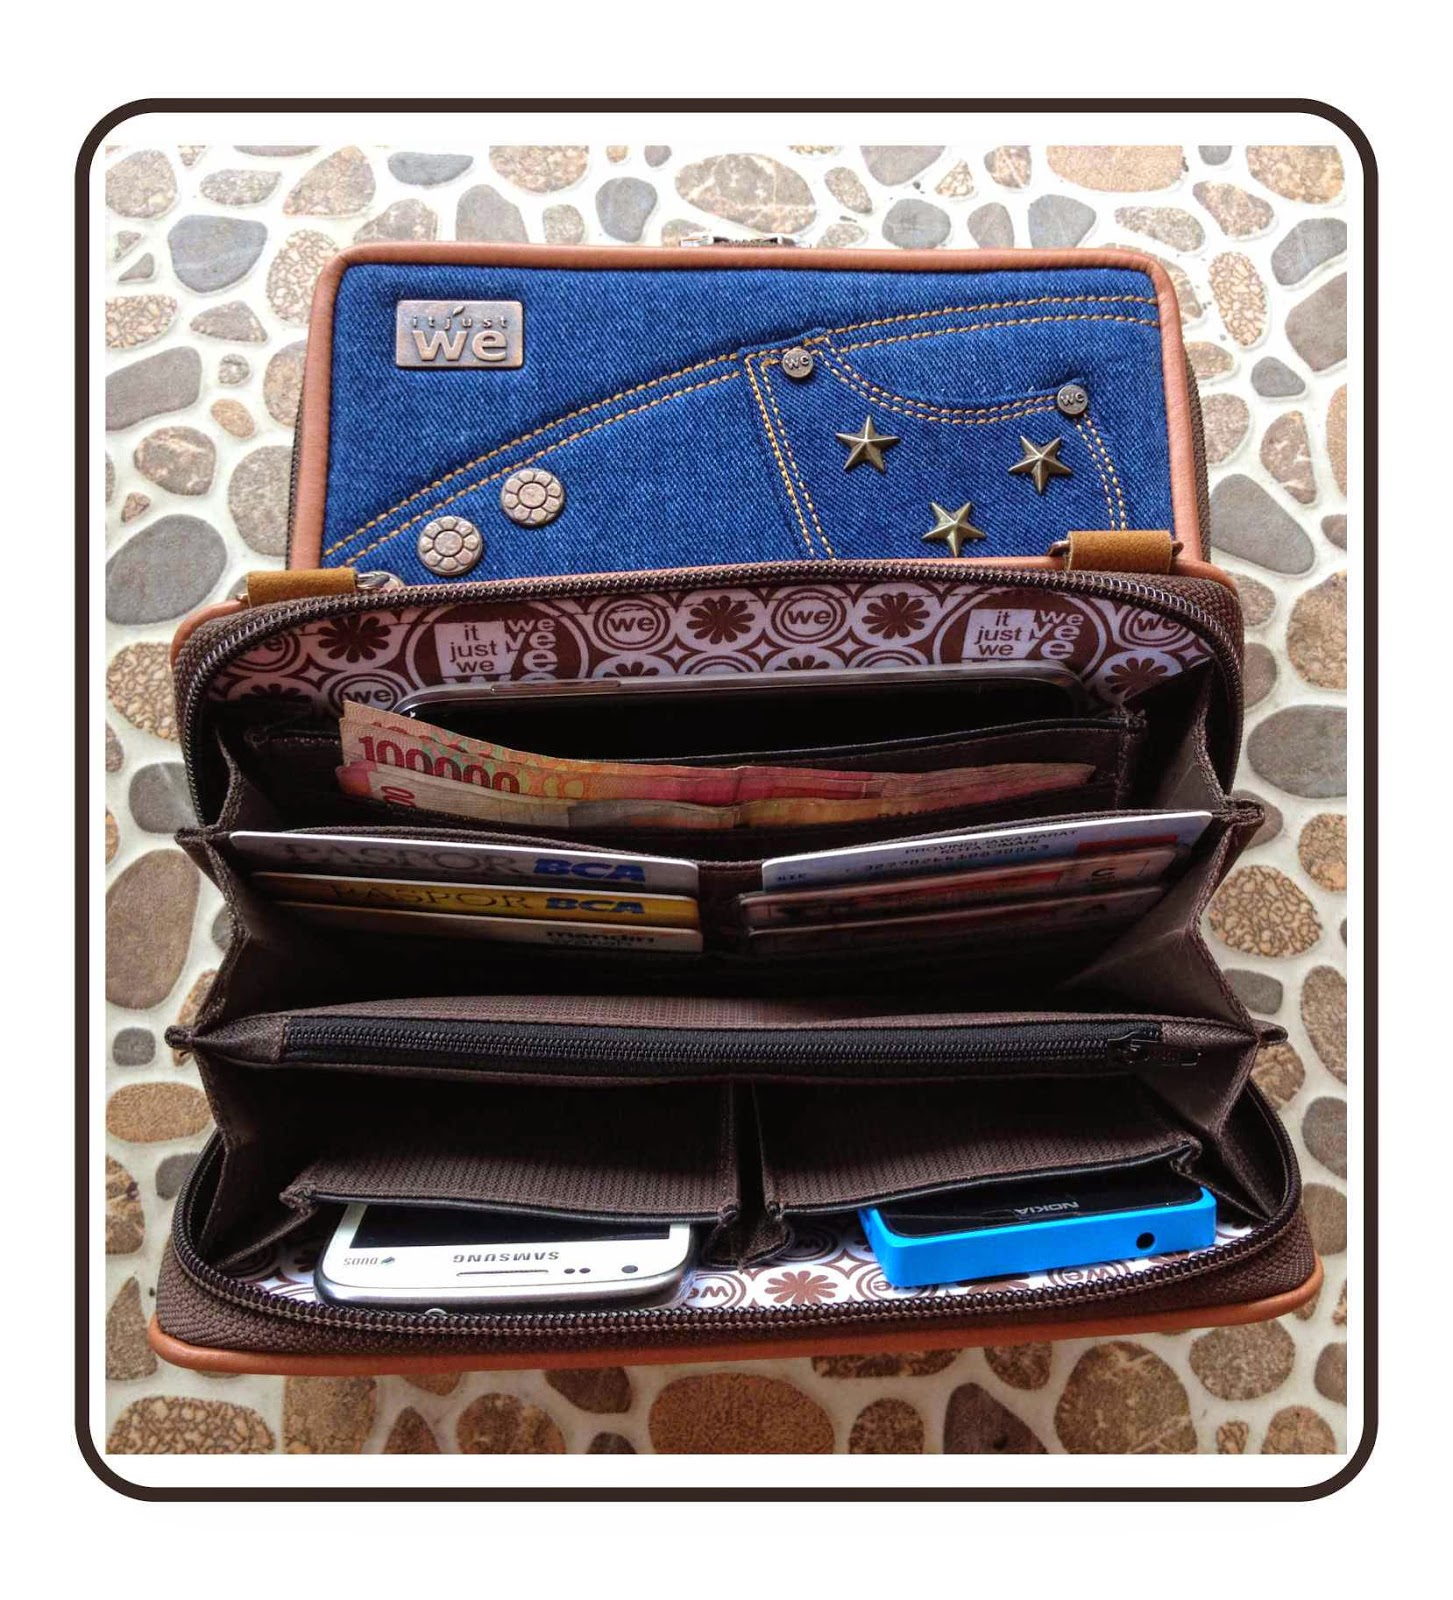 inner just we dompet jeans hpo